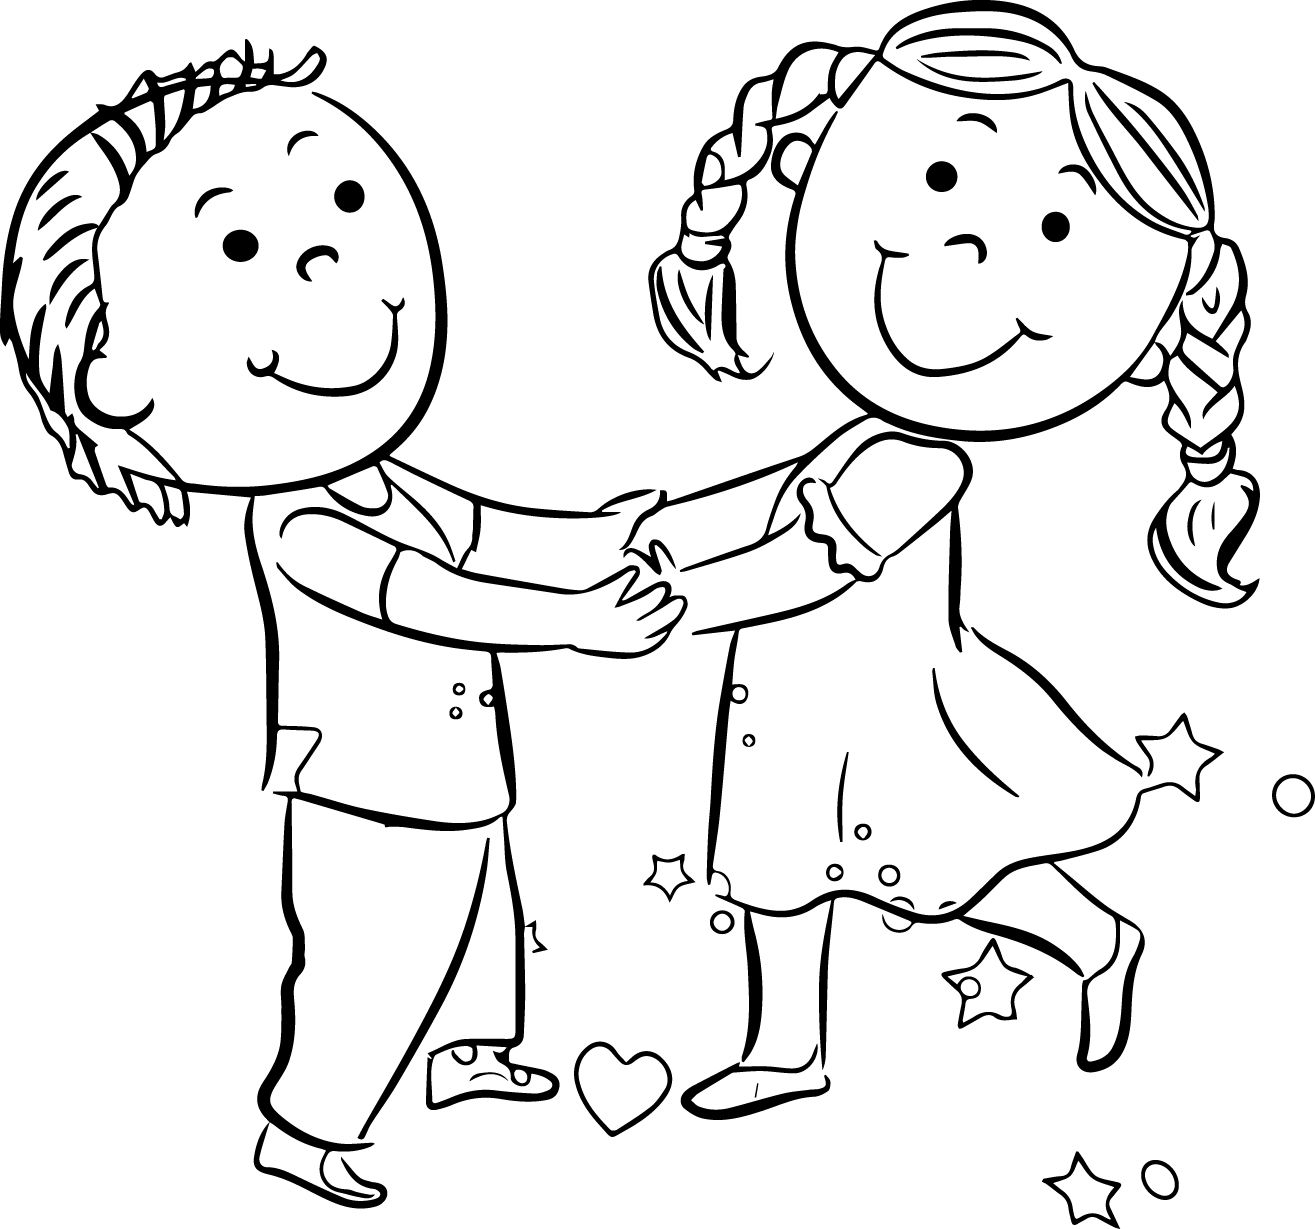 Children Coloring Pages Coloring Pages For Kids Coloring Pages